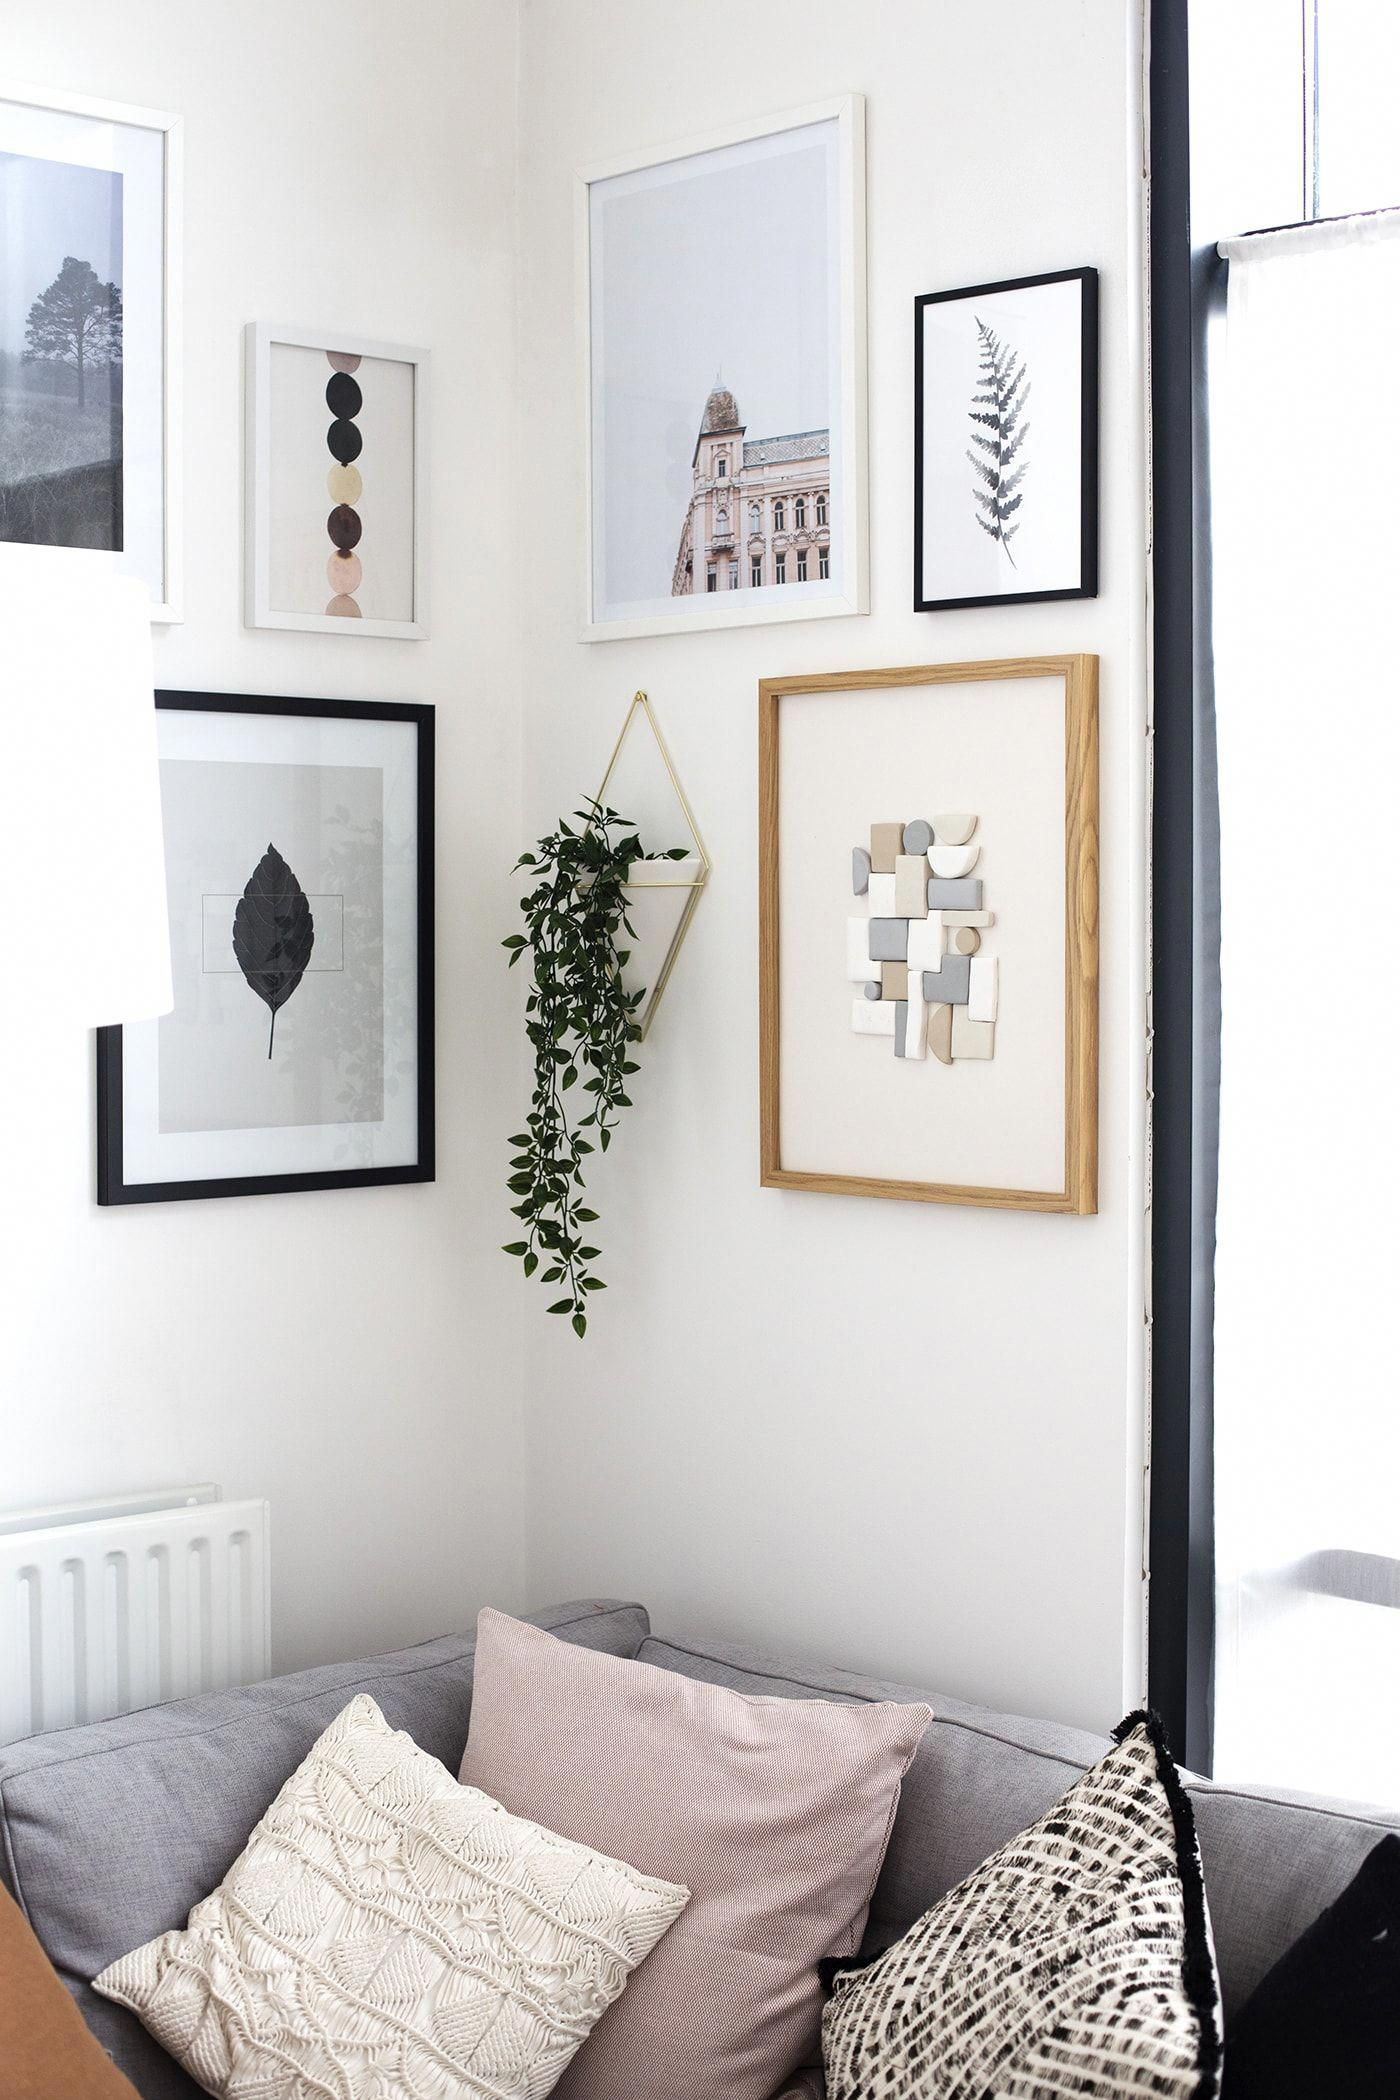 How To Style A Gallery Wall The Lovely Drawer Gallery Wall Bedroom Wall Decor Bedroom Gallery Wall Inspiration